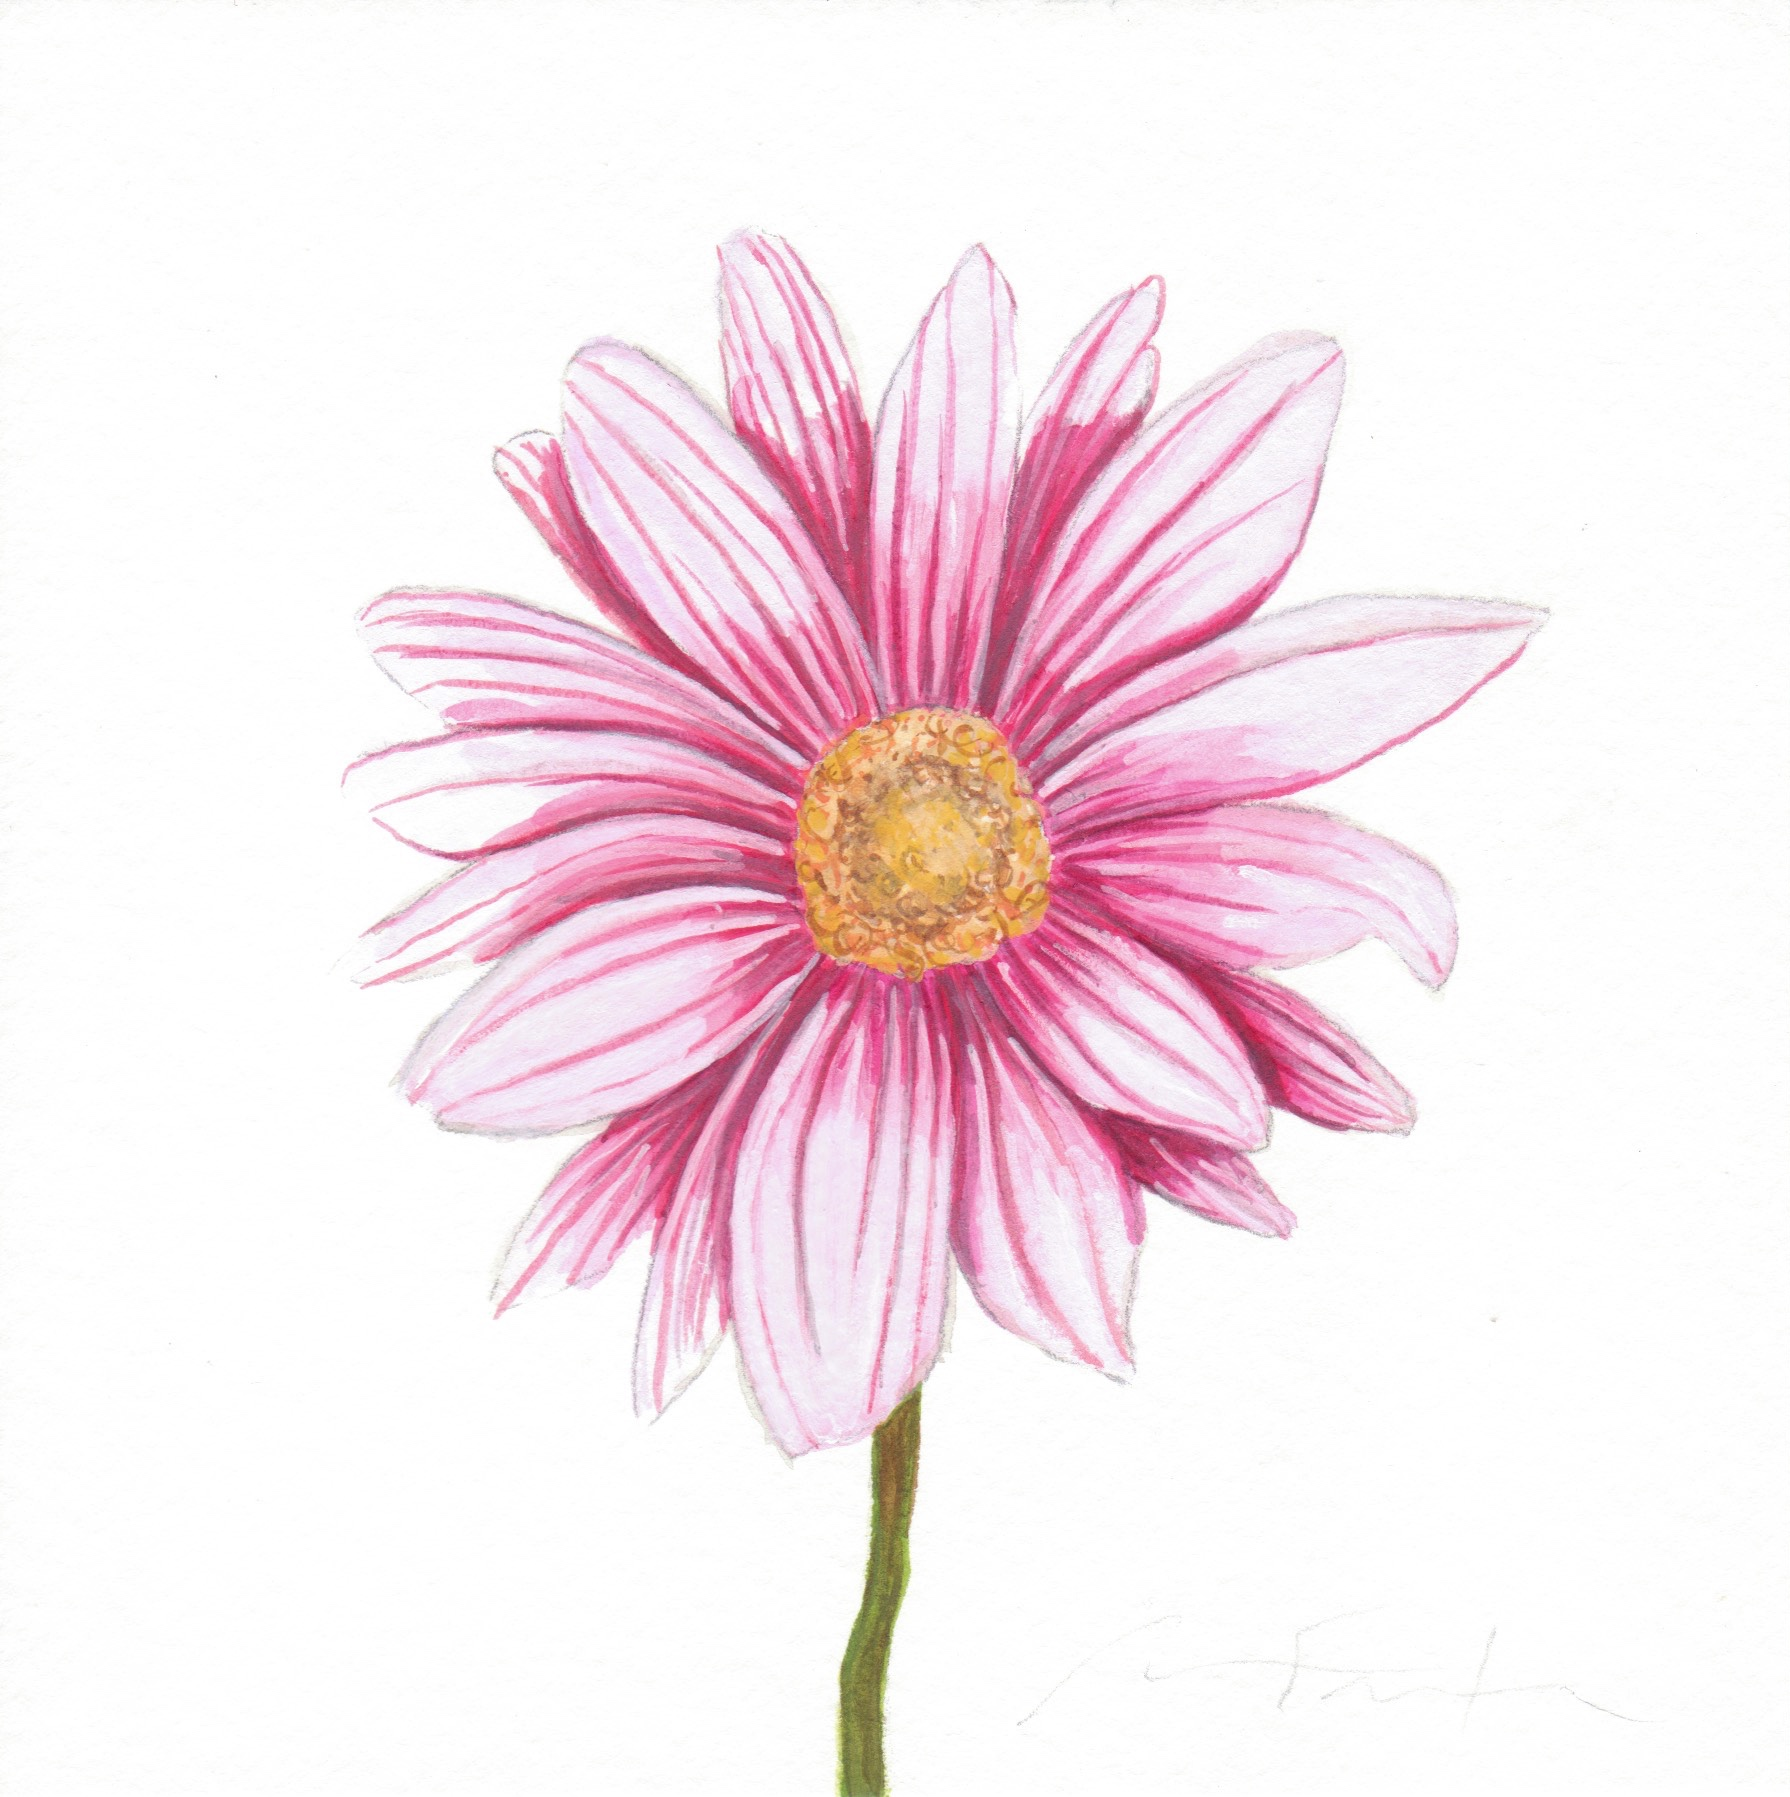 Pink flower watercolor study angela faustina angela faustina pink flower study 2015 watercolor on paper 6 by angela faustina pink flower study 2015 watercolor on paper 6 by izmirmasajfo